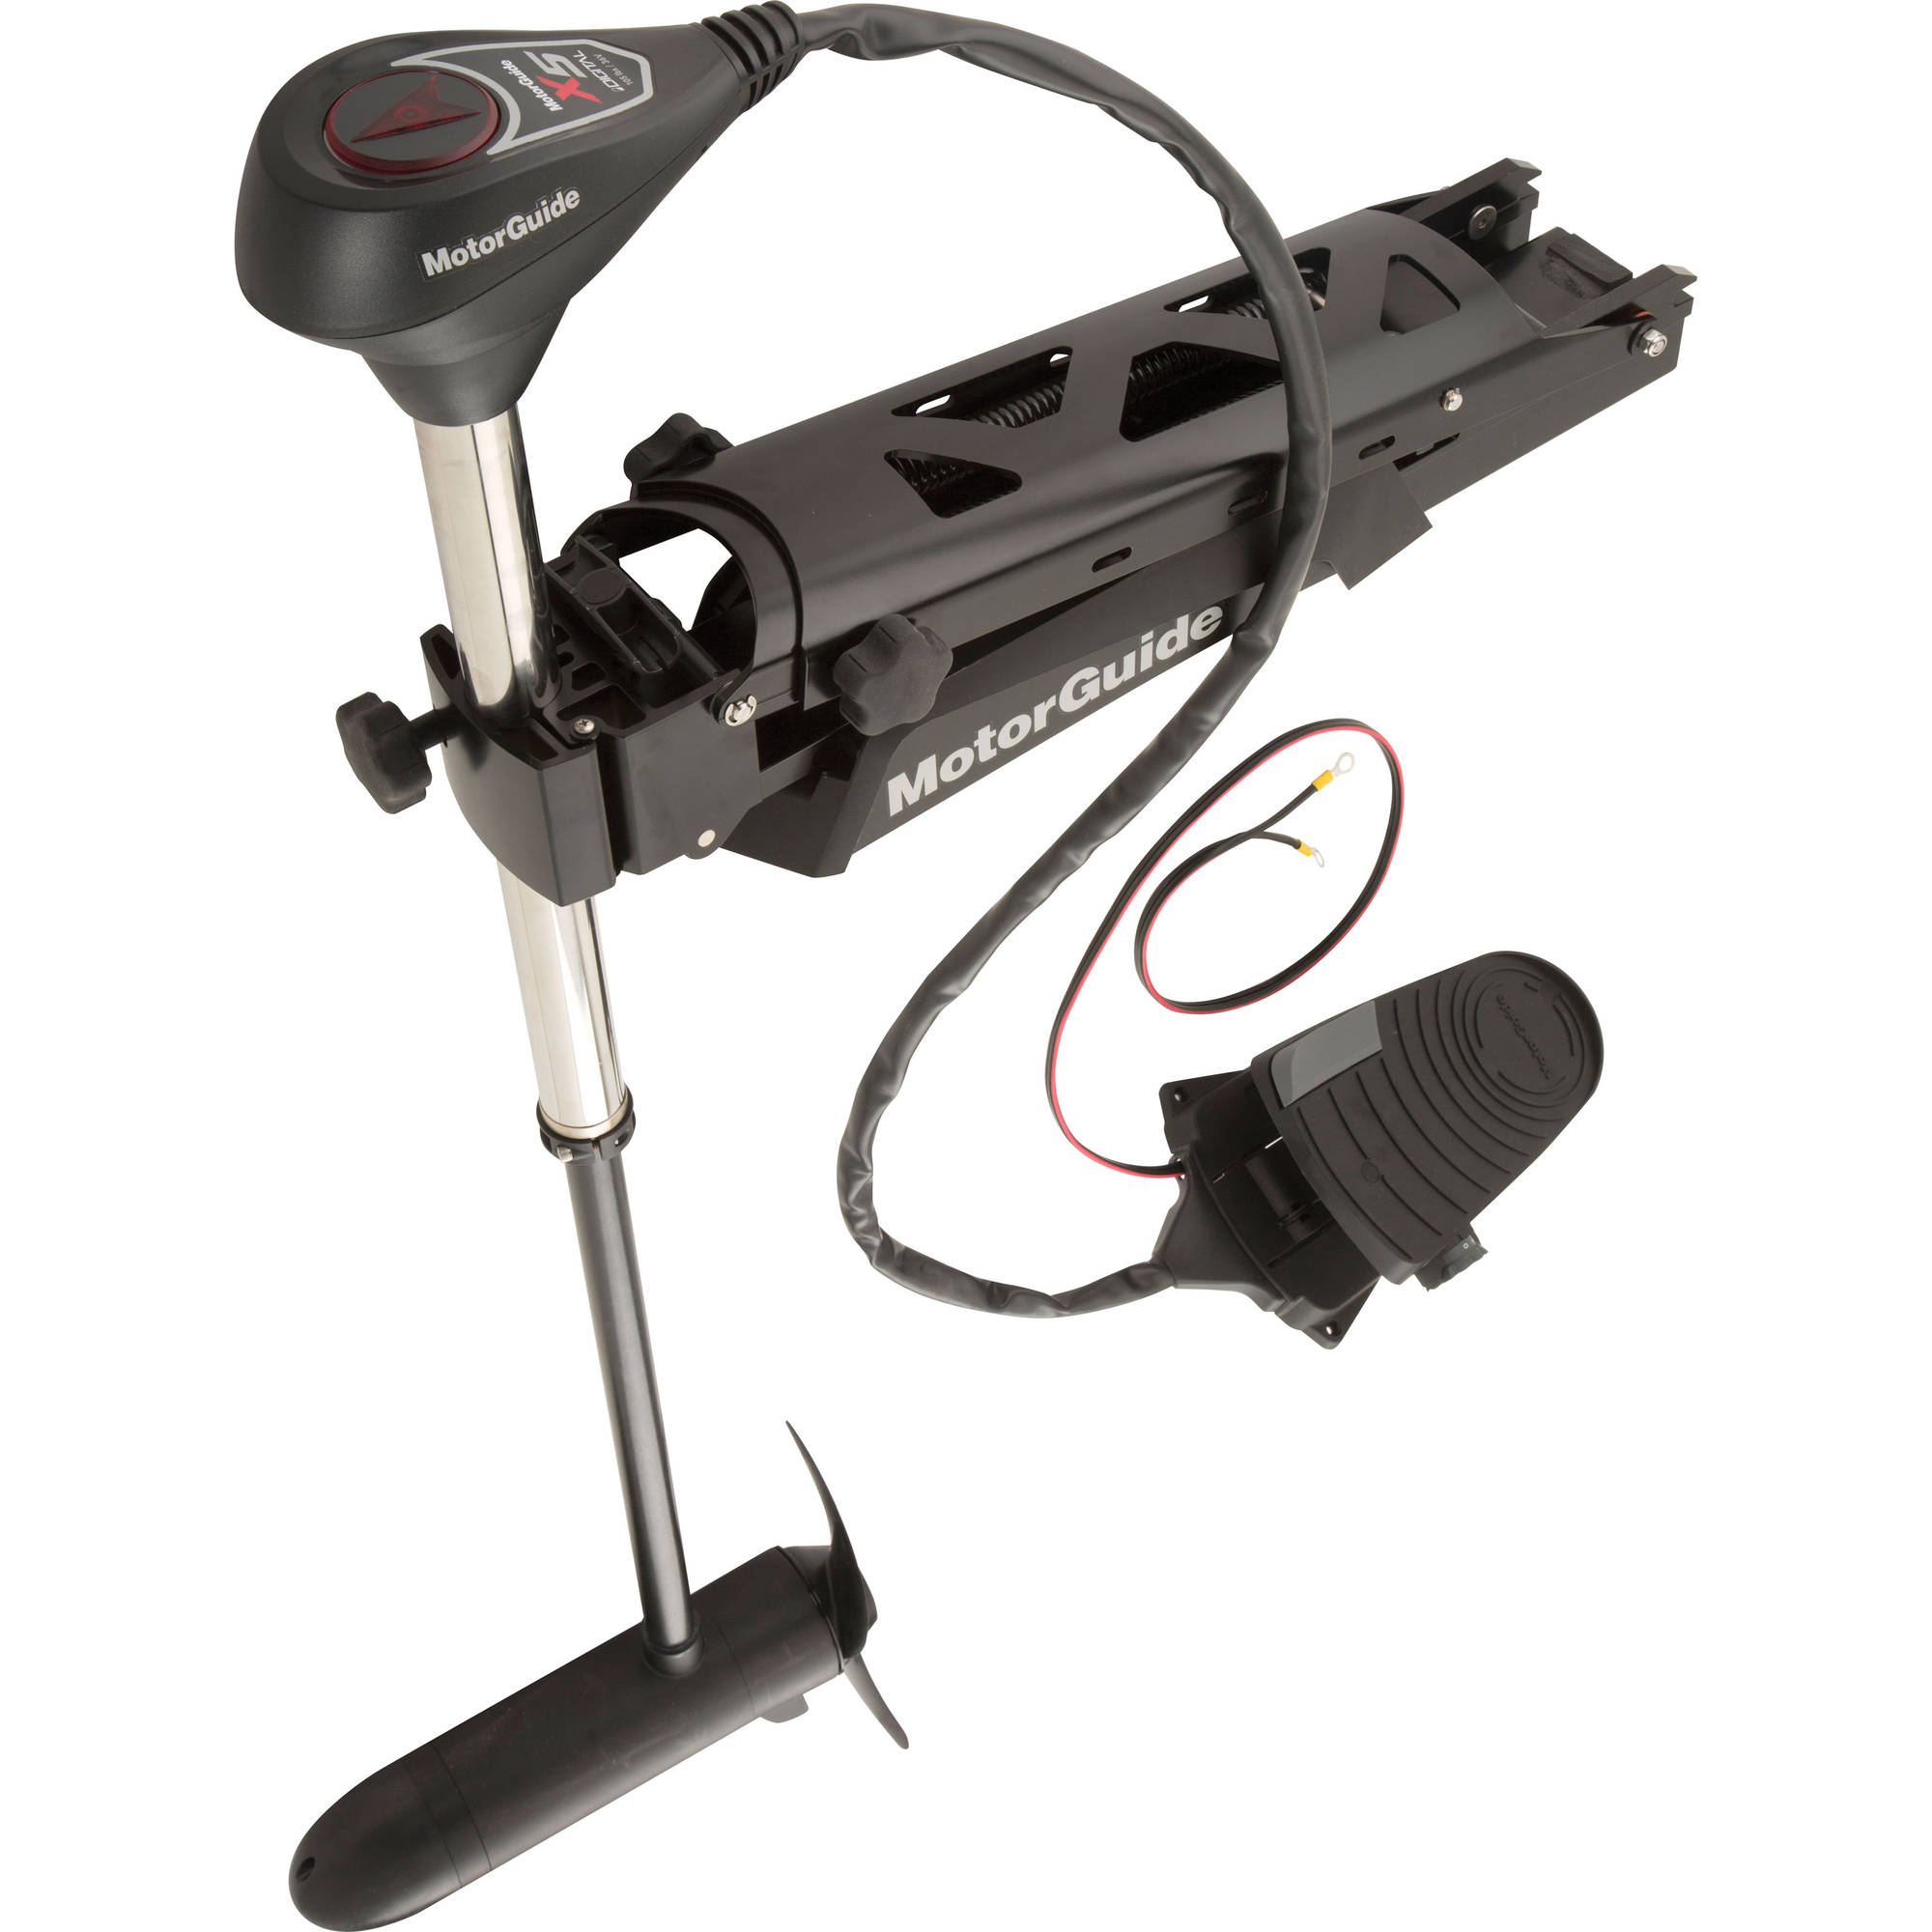 MotorGuide X5 24V Foot-Control Bow Mount Digital Variable Speed Freshwater Trolling Motor by attwood